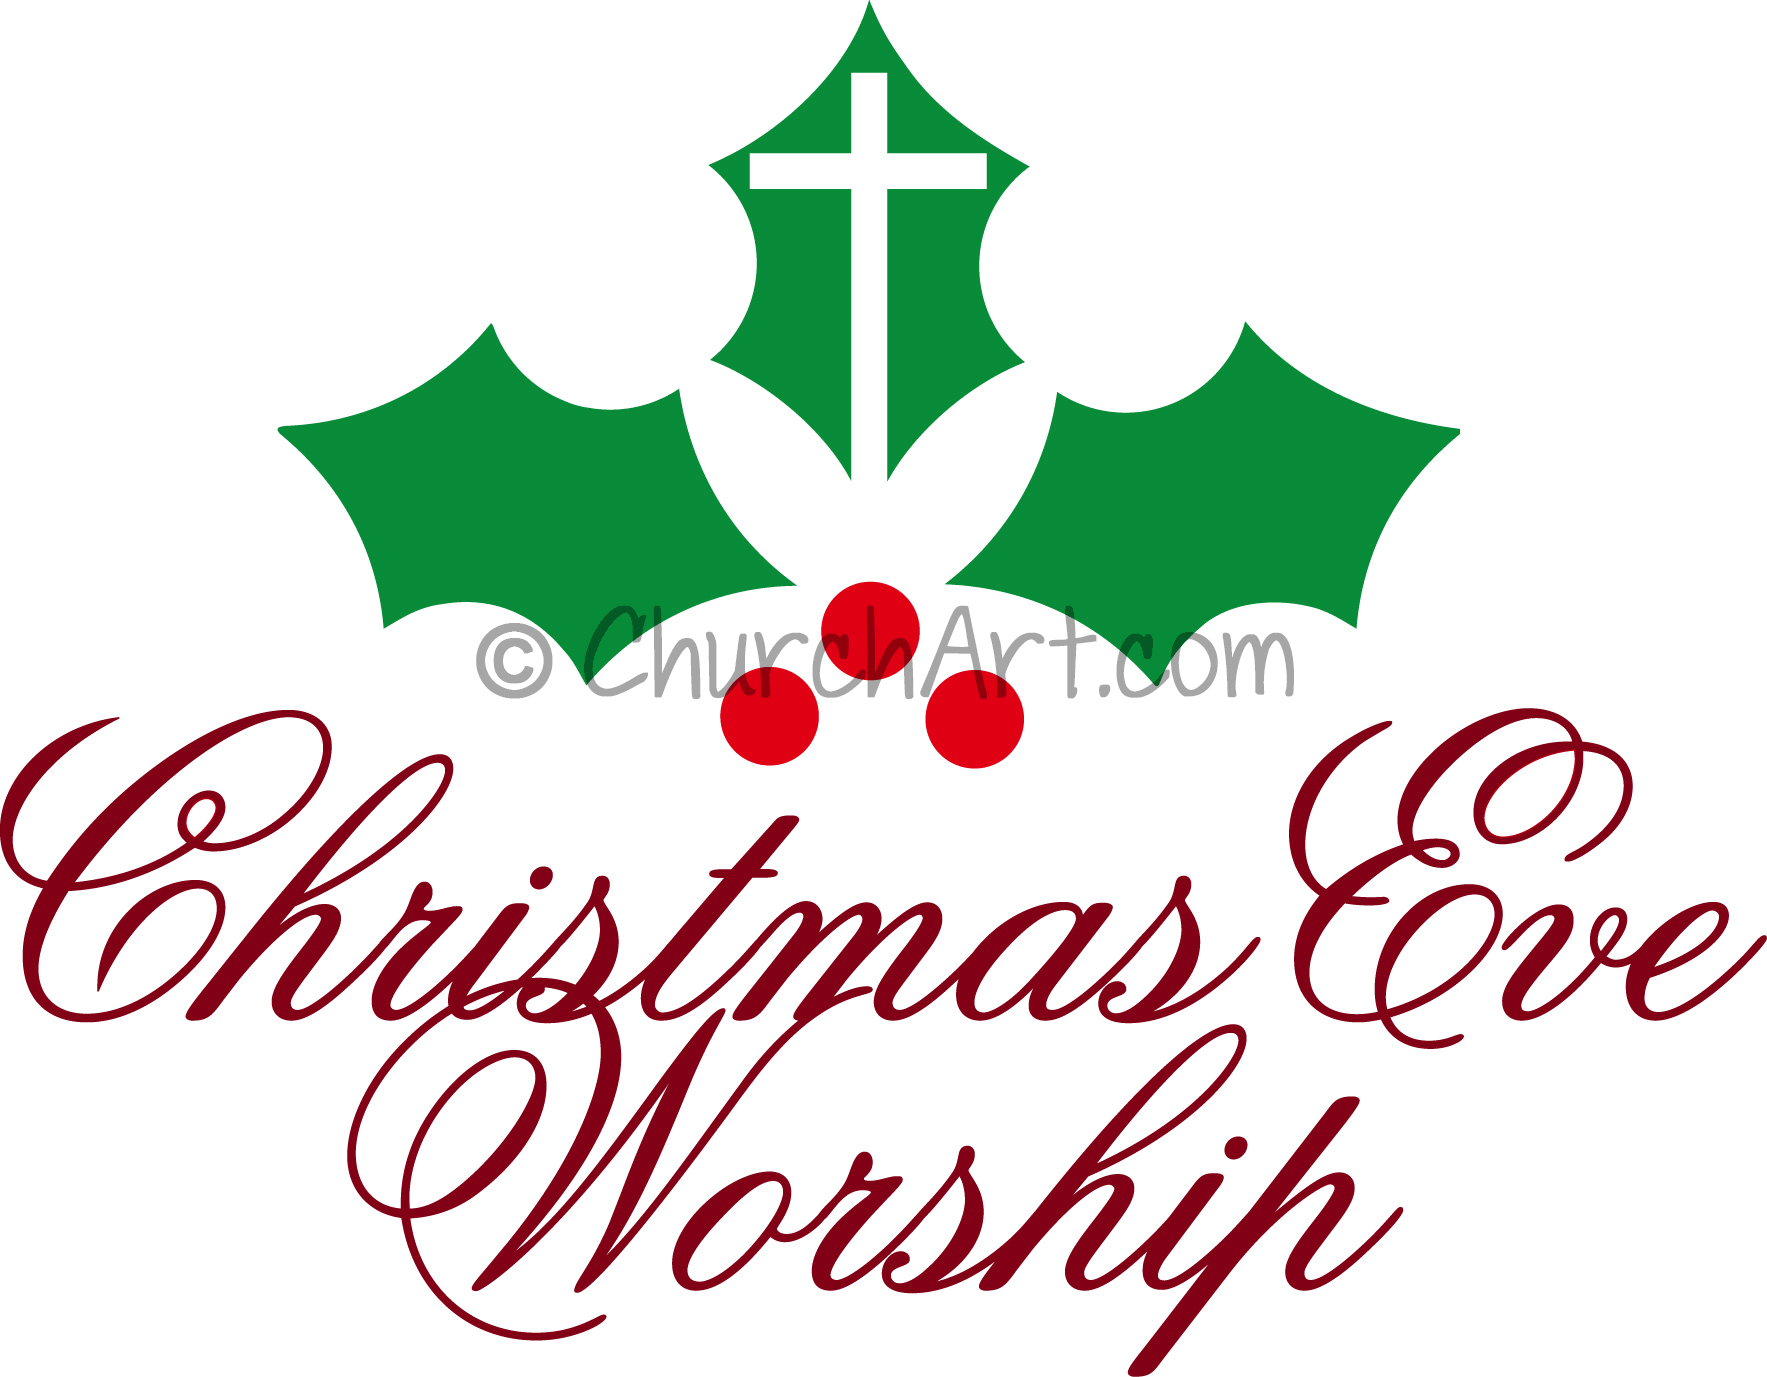 Clip-art illustration for Church Christmas Eve Worship Service featuring cross and holy